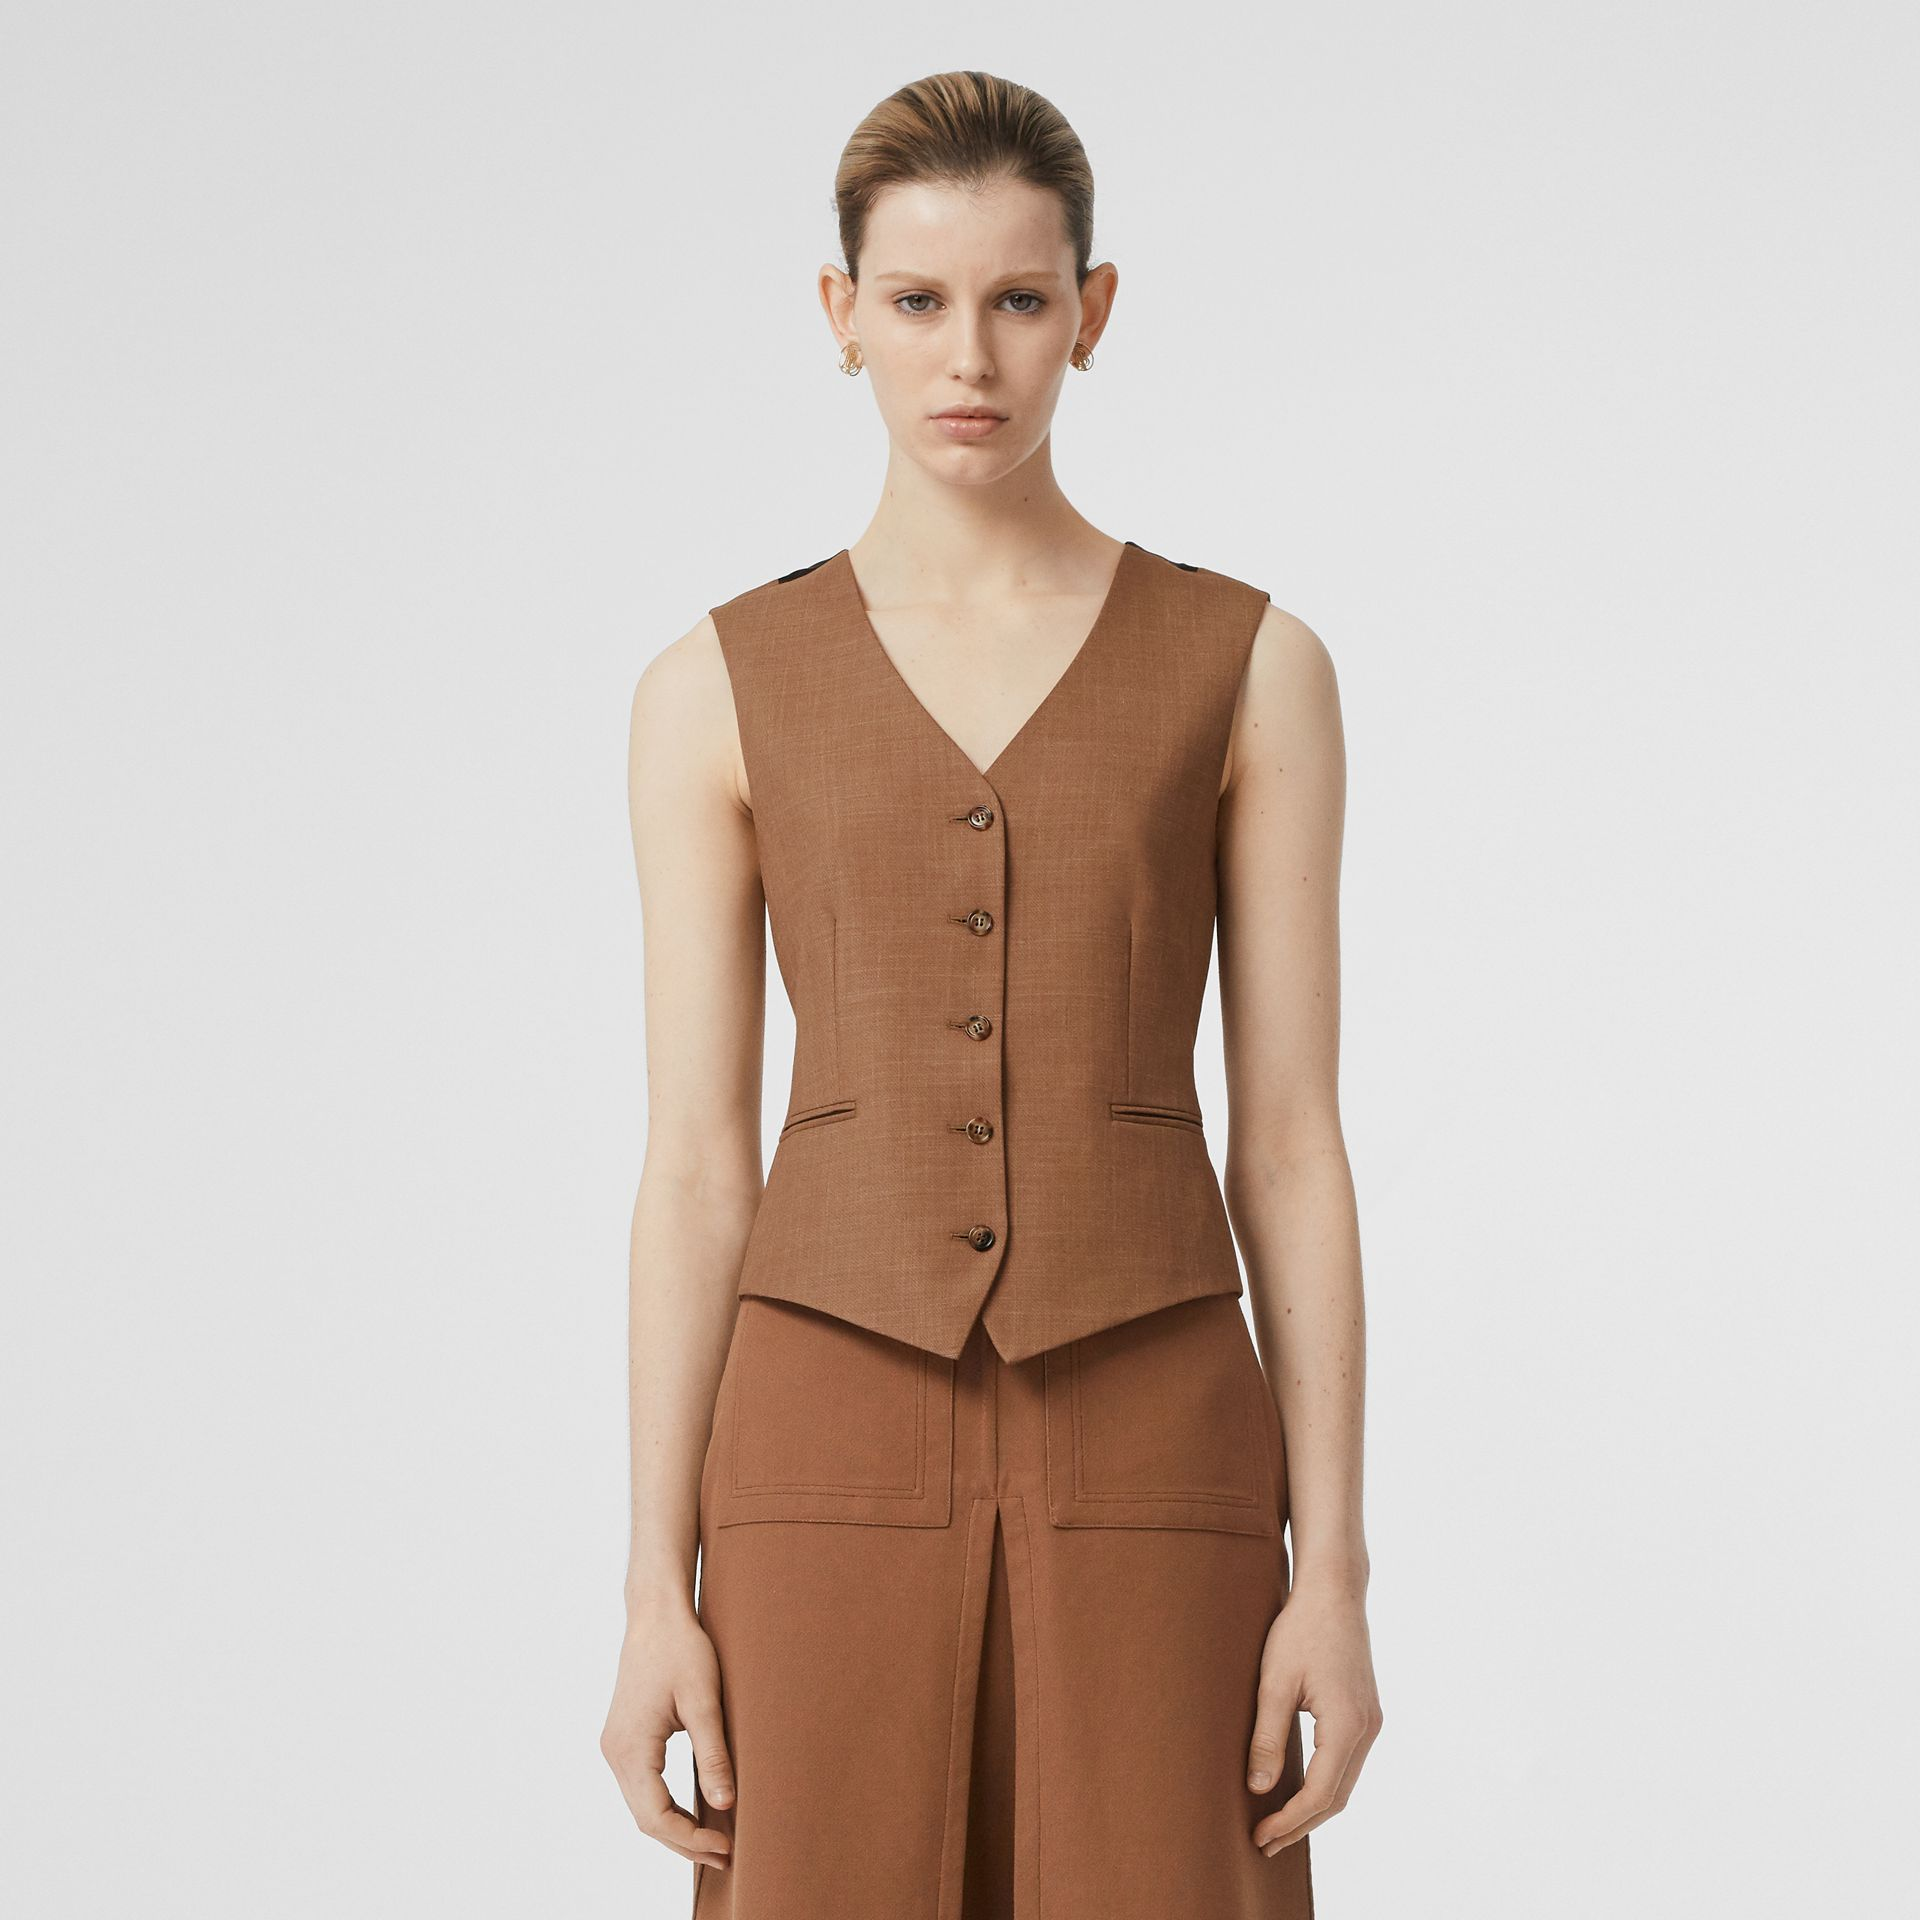 Satin Panel Mohair Wool Blend Tailored Waistcoat in Bronze - Women | Burberry United States - gallery image 6